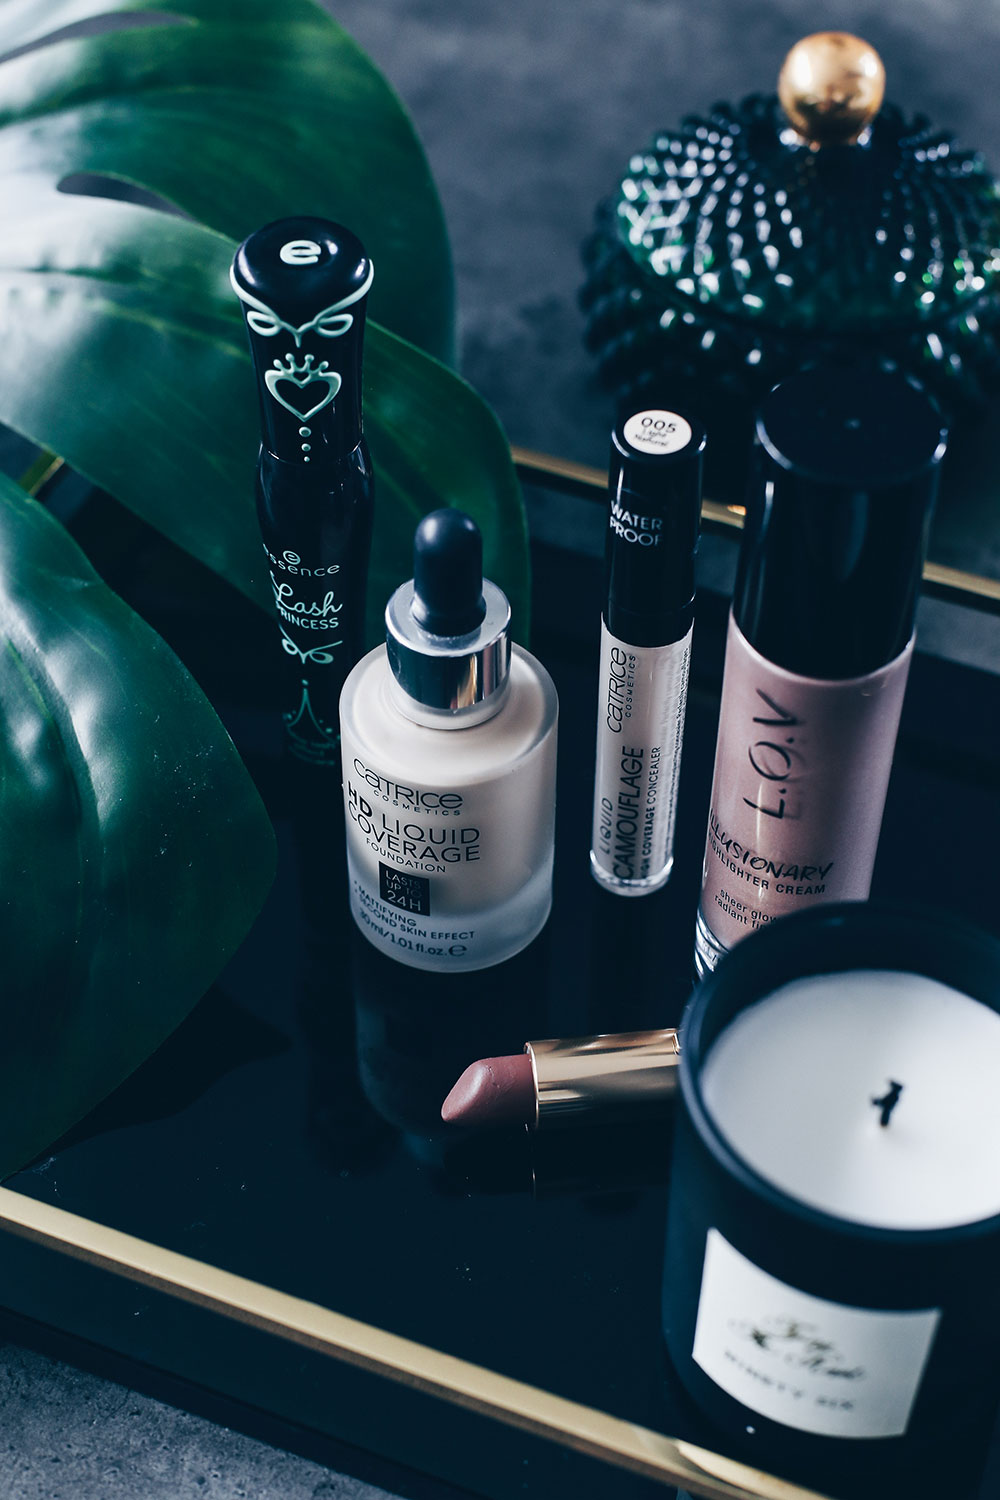 Meine 5 Makeup Must-Haves aus der Drogerie, Drogerie Essentials, Foundation Catrice, Concealer Catrice, Mascara Essence, Color Riche Loreal Lippenstifte Review, Highlighter LOV, Beautyreport, Erfahrungsbericht, Review, Beautyblog, Beauty Magazin, www.whoismocca.com